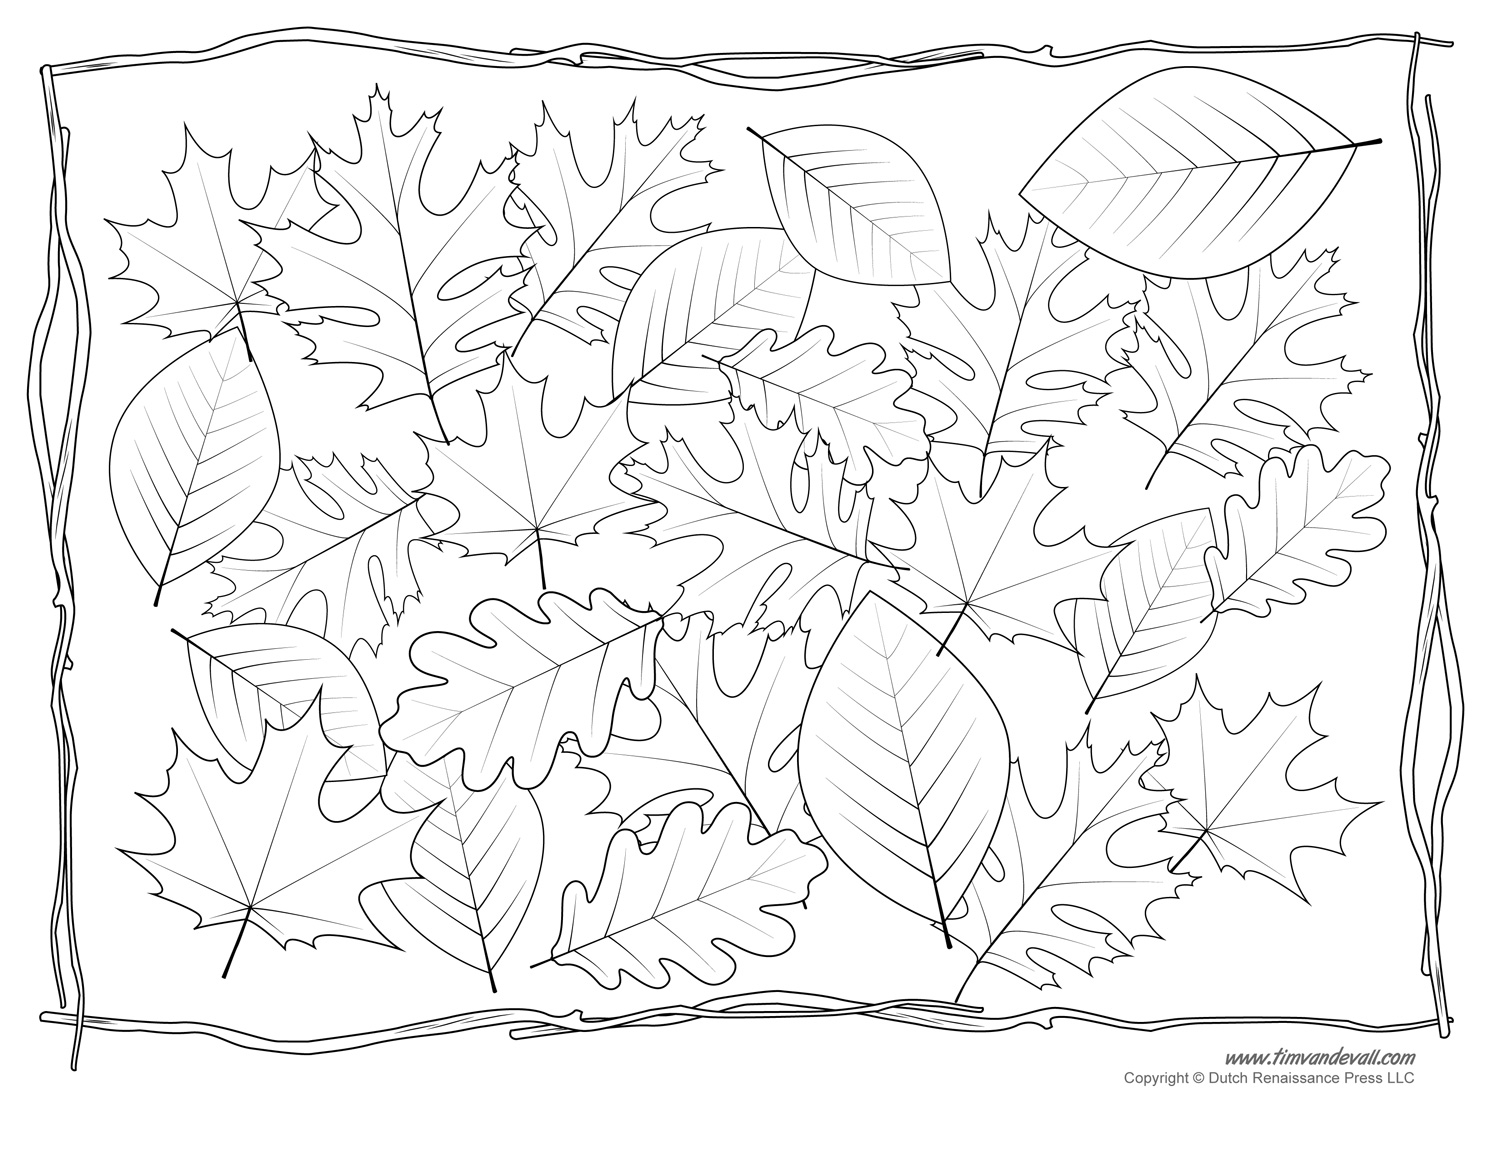 leaves coloring images leaf coloring pages coloringpages1001com coloring leaves images